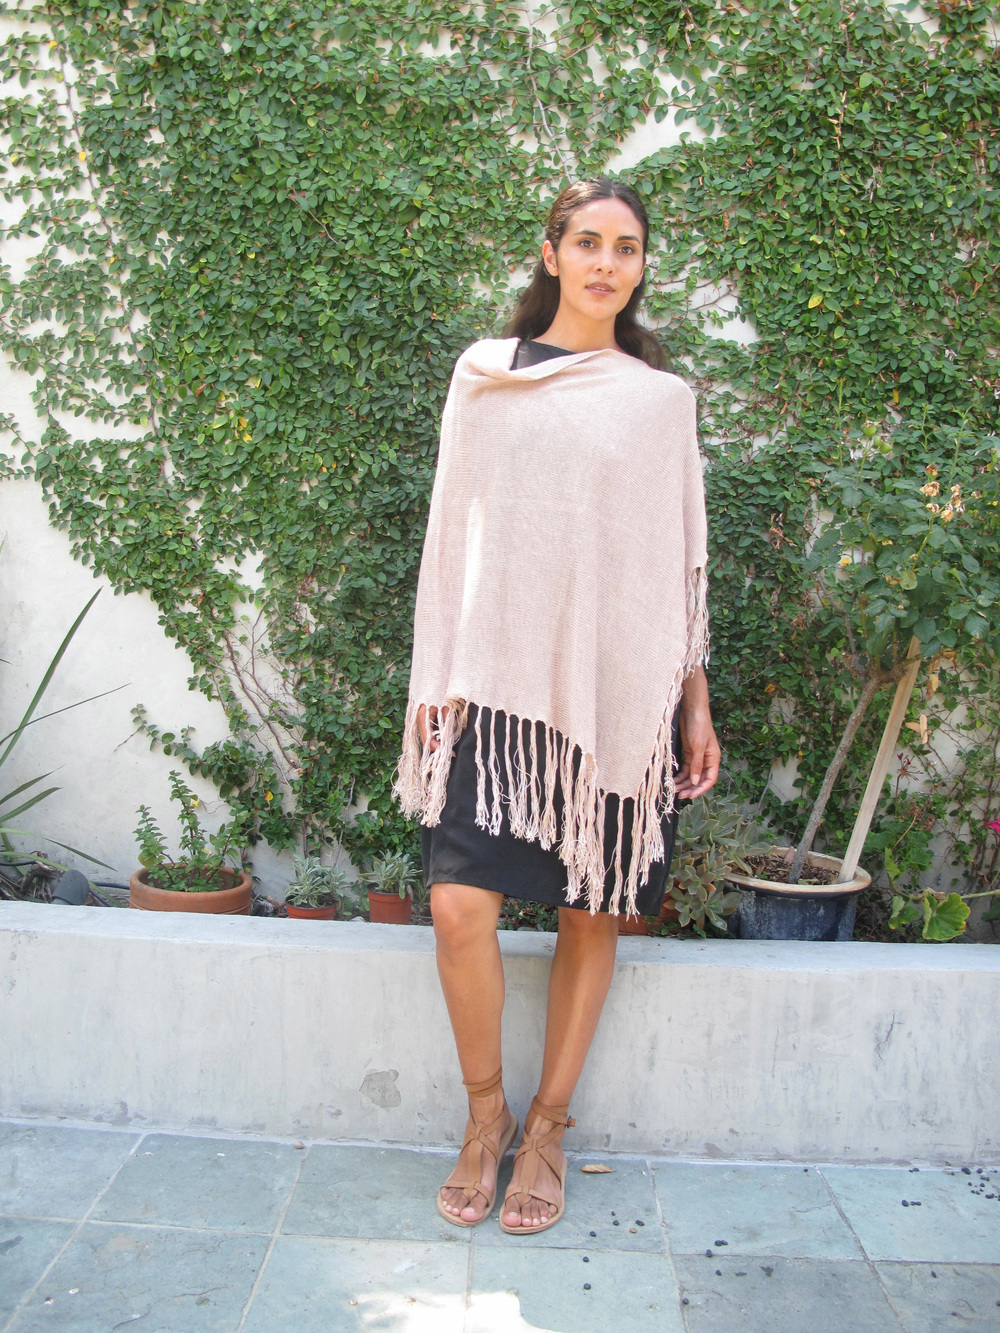 mellow evening   Cozy dinner, evening stroll or watching the sun set from the Santa Monica Mountains. Find similar ponchos on  eBay  or  Etsy . Sandals are by Valia Gabriel, handmade in Greece, also picked up from  Magpi . For a USA made option try  Pam Left Pam Right .